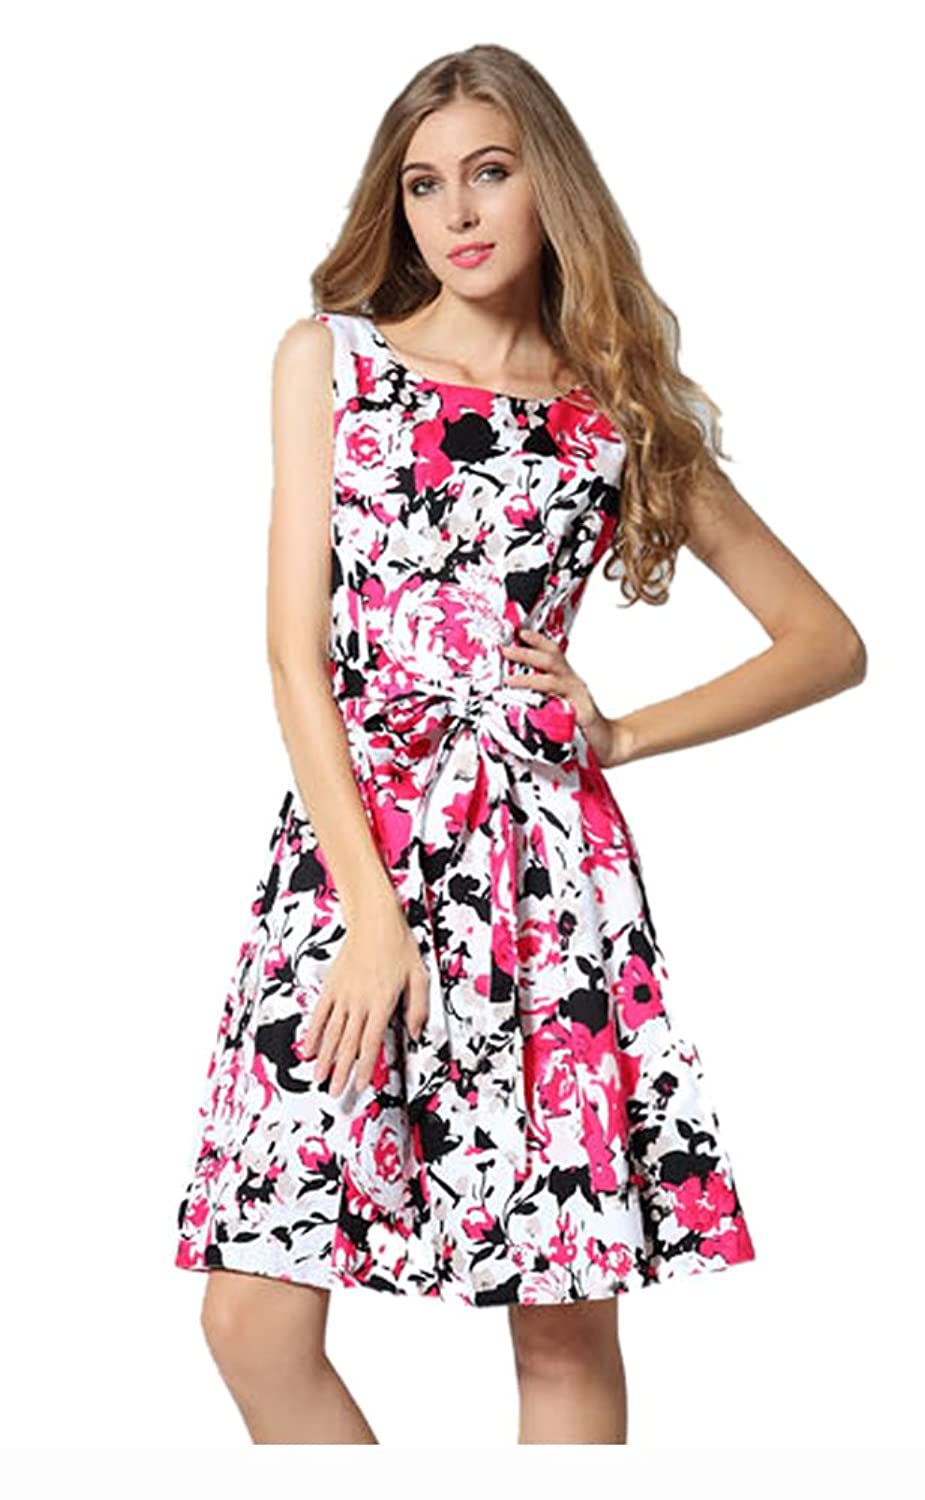 Purpura Erizo Womens Allover Flora Printing Empire Trim Party Pleated Dress